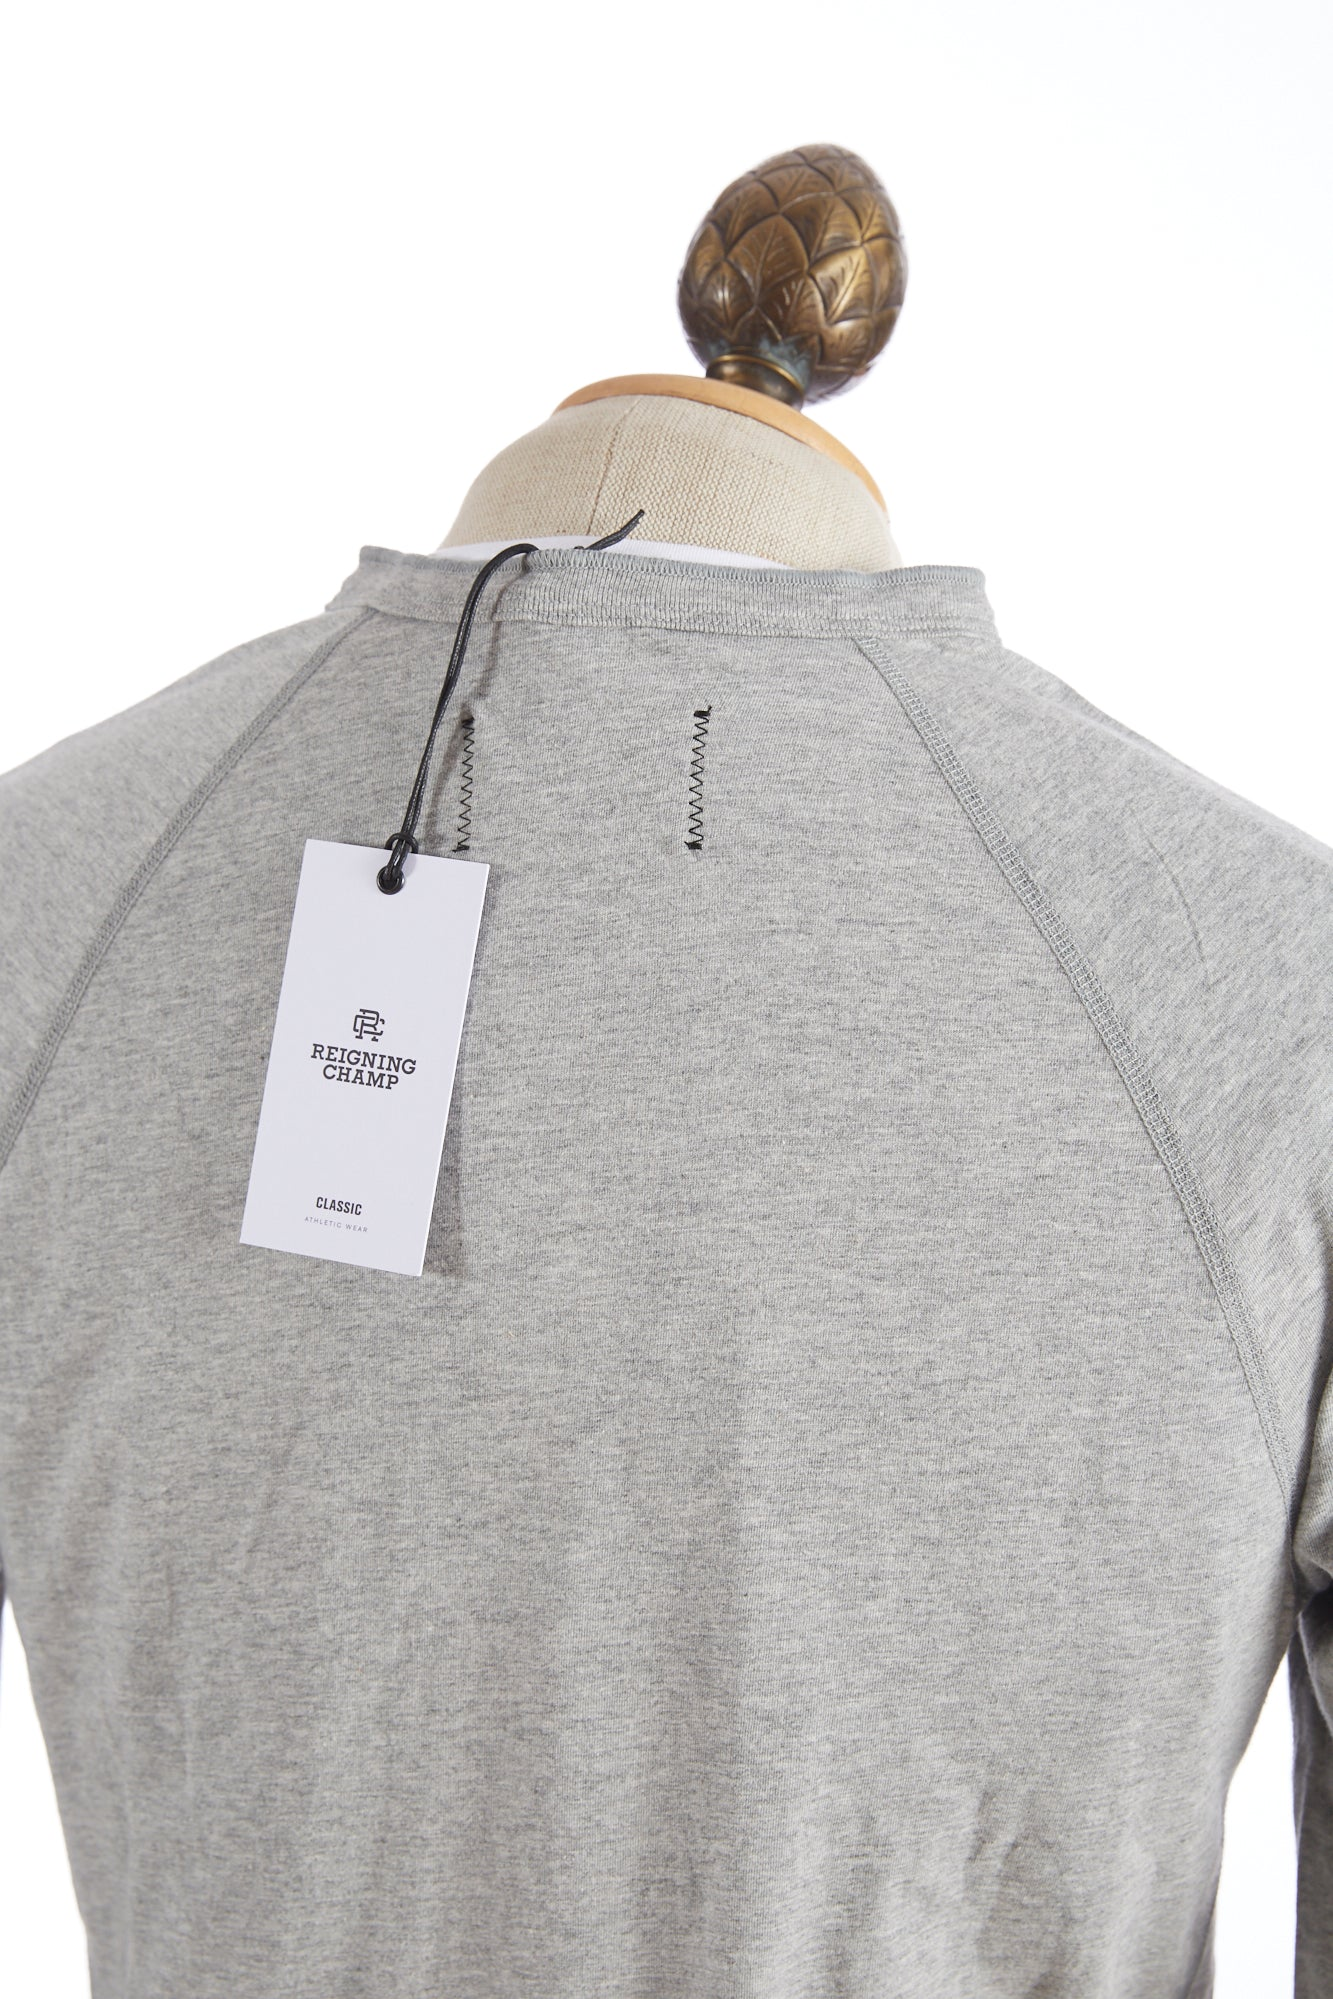 Reigning Champ Grey Henley Long Sleeve T-Shirt